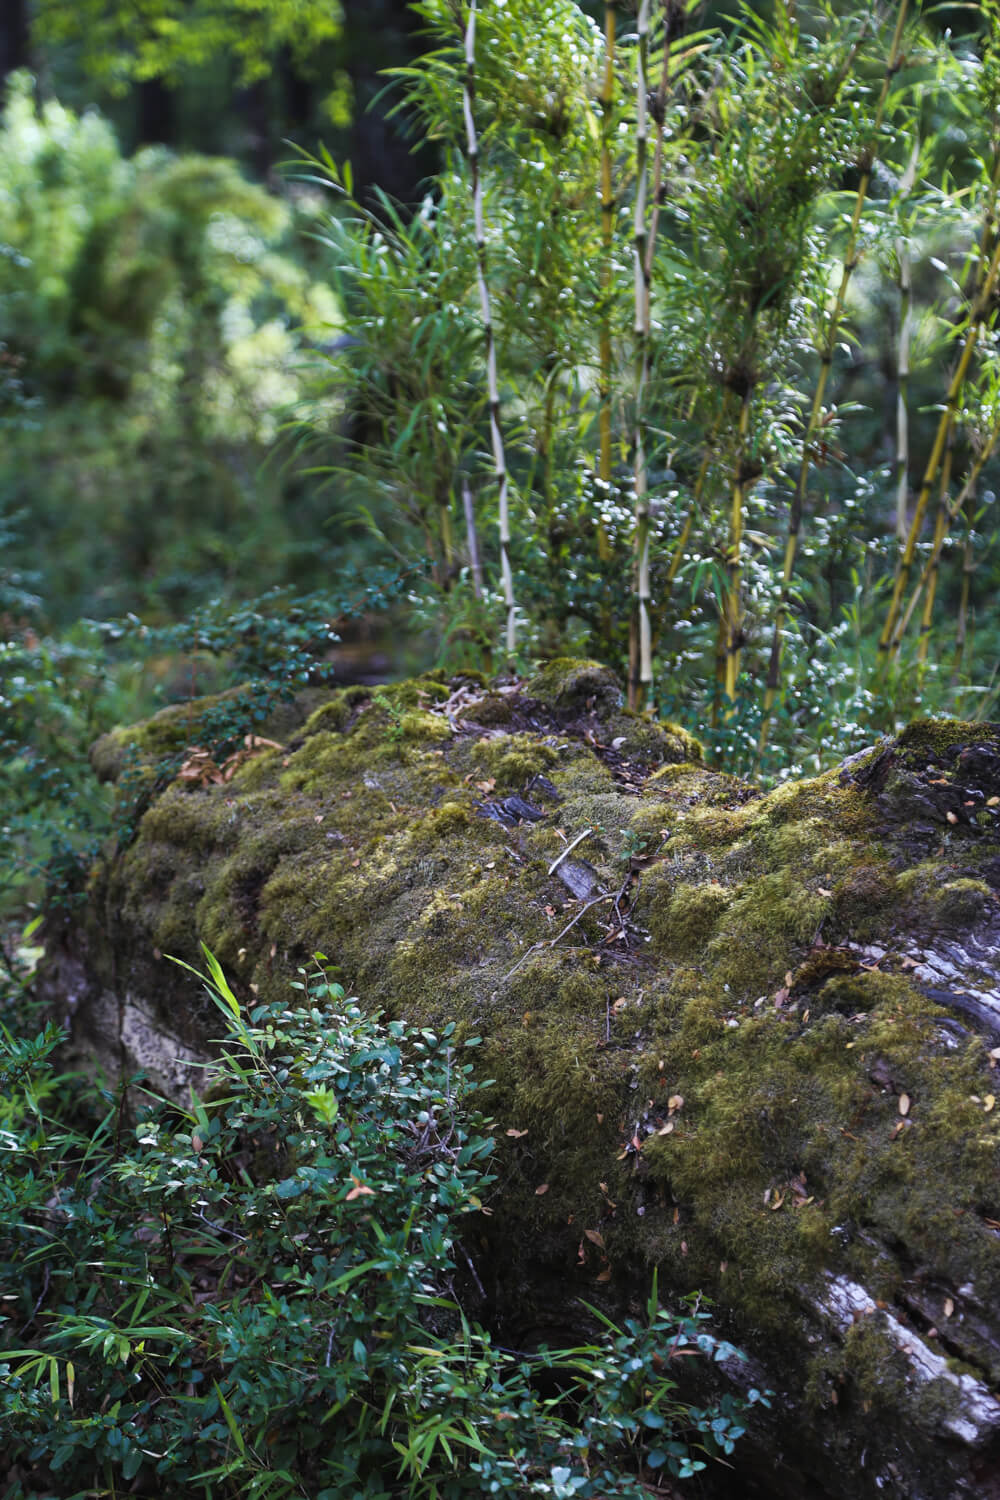 A fallen tree trunk lays on the ground with green moss growing on it